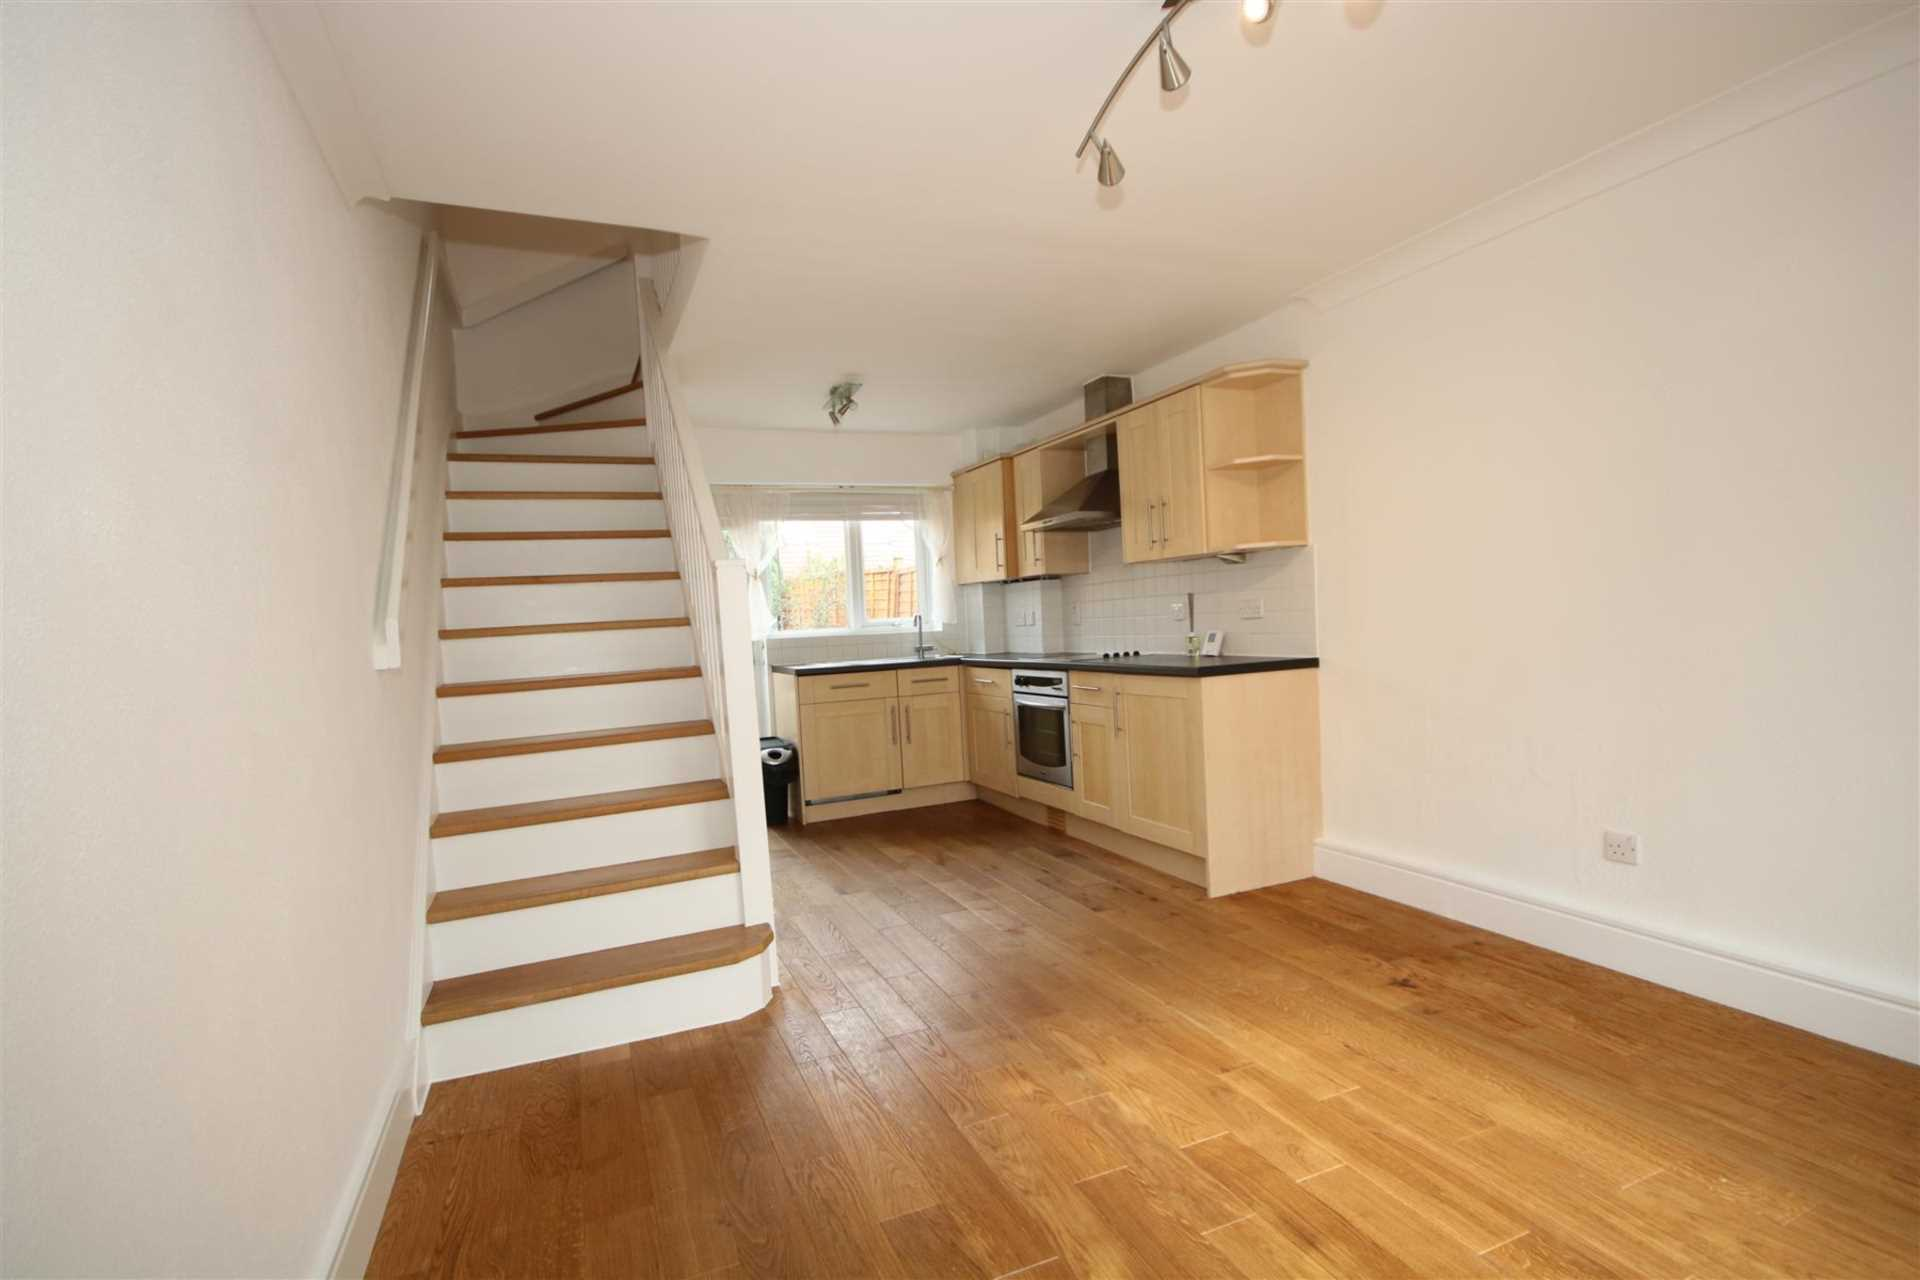 LOVELY 1 BED HOUSE IN CUL DE SAC WITH GARDEN, Image 4